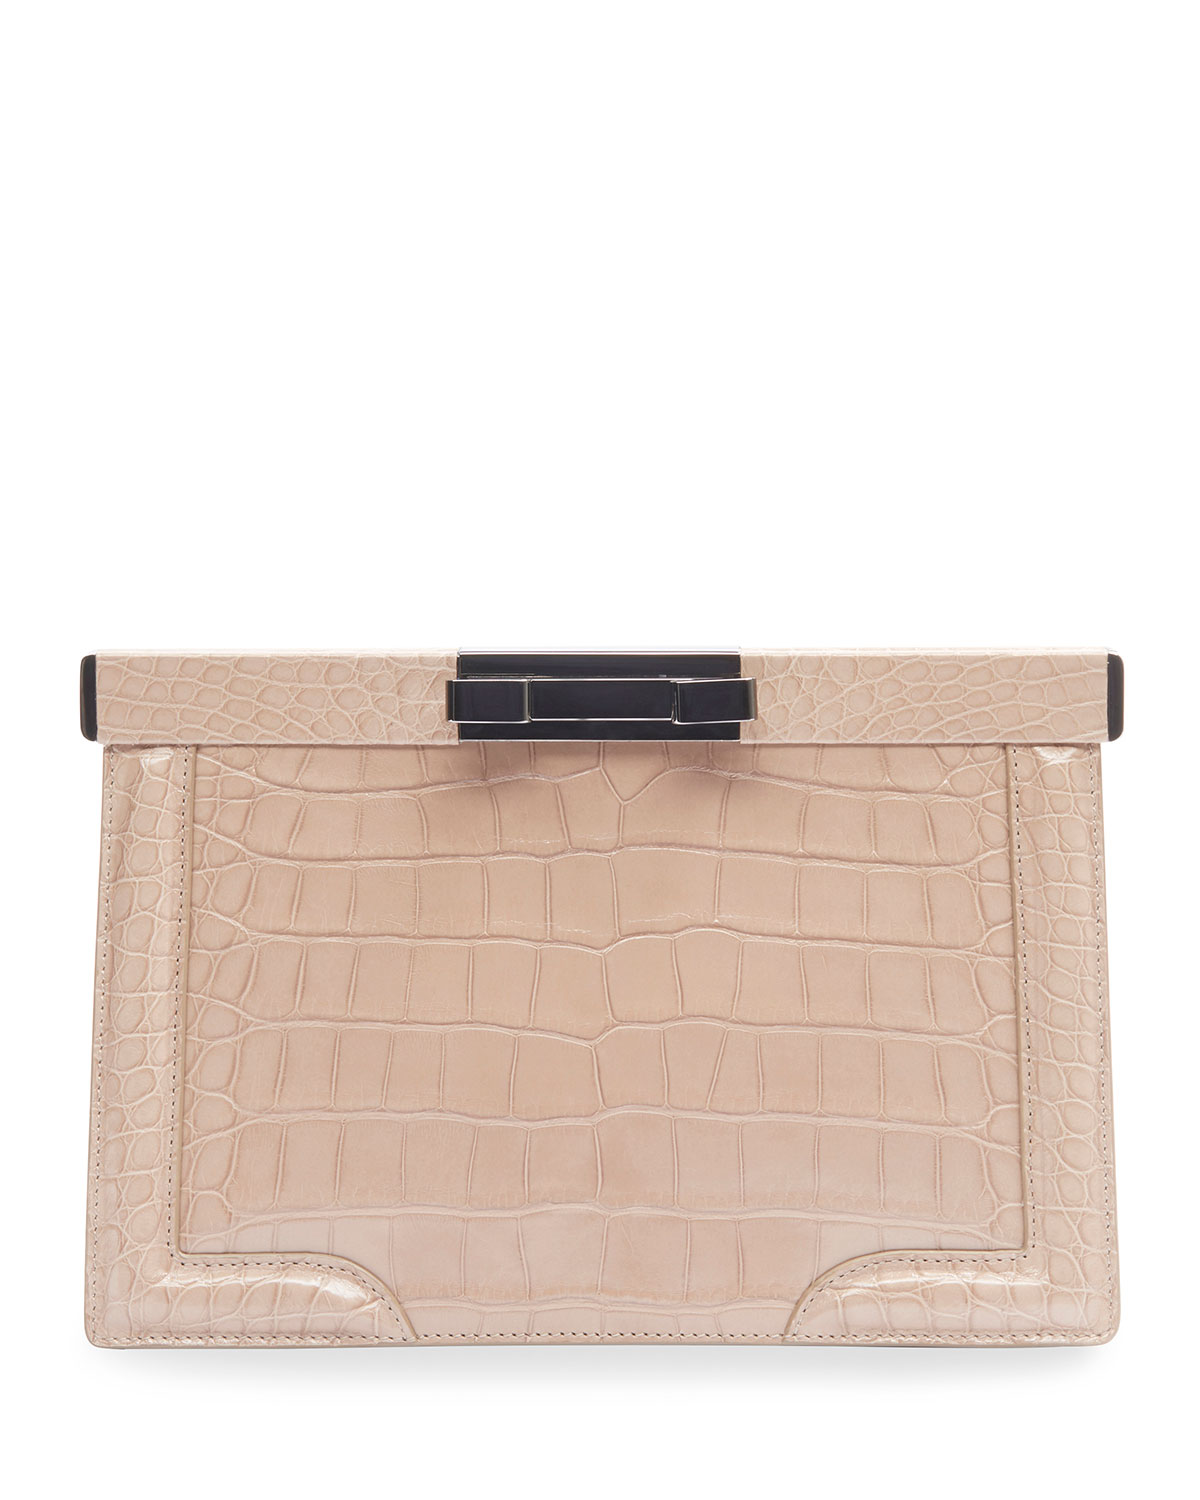 ALAIA Cecile Crocodile-Embossed Leather Clutch Bag